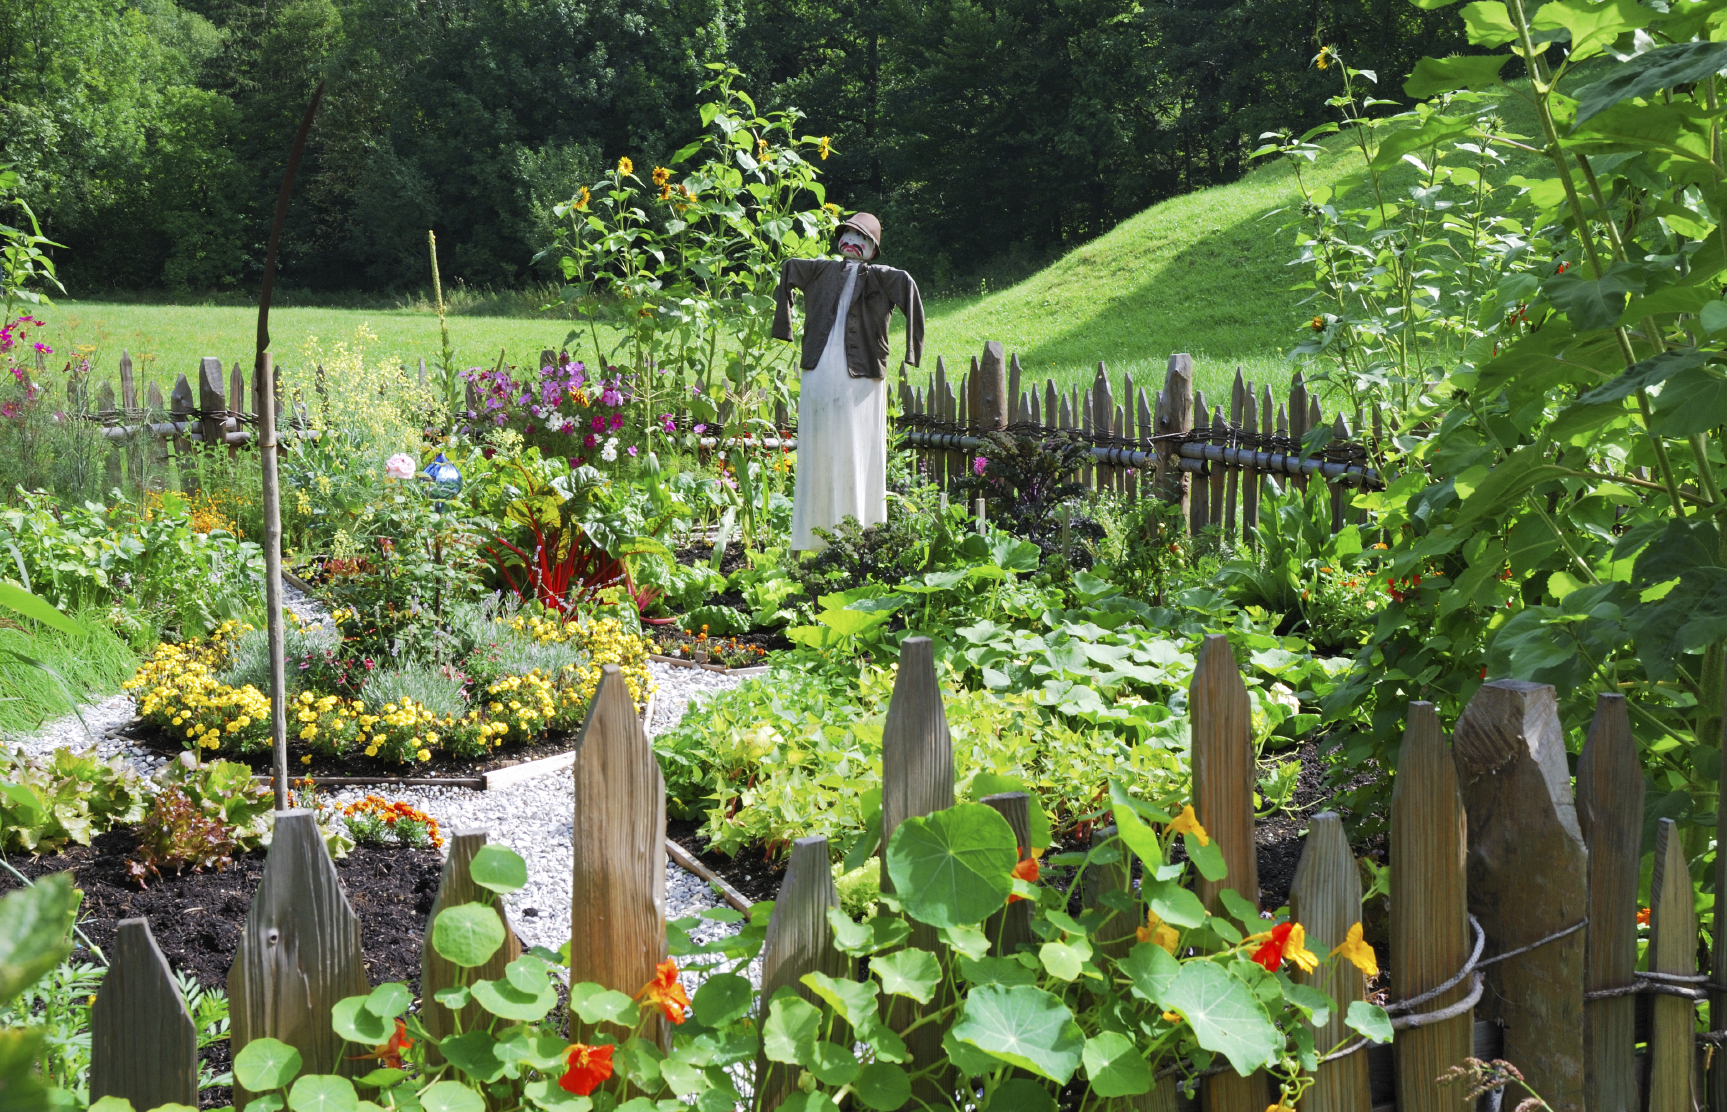 Vegetable Garden Design - Ideas For Designing A Vegetable Garden